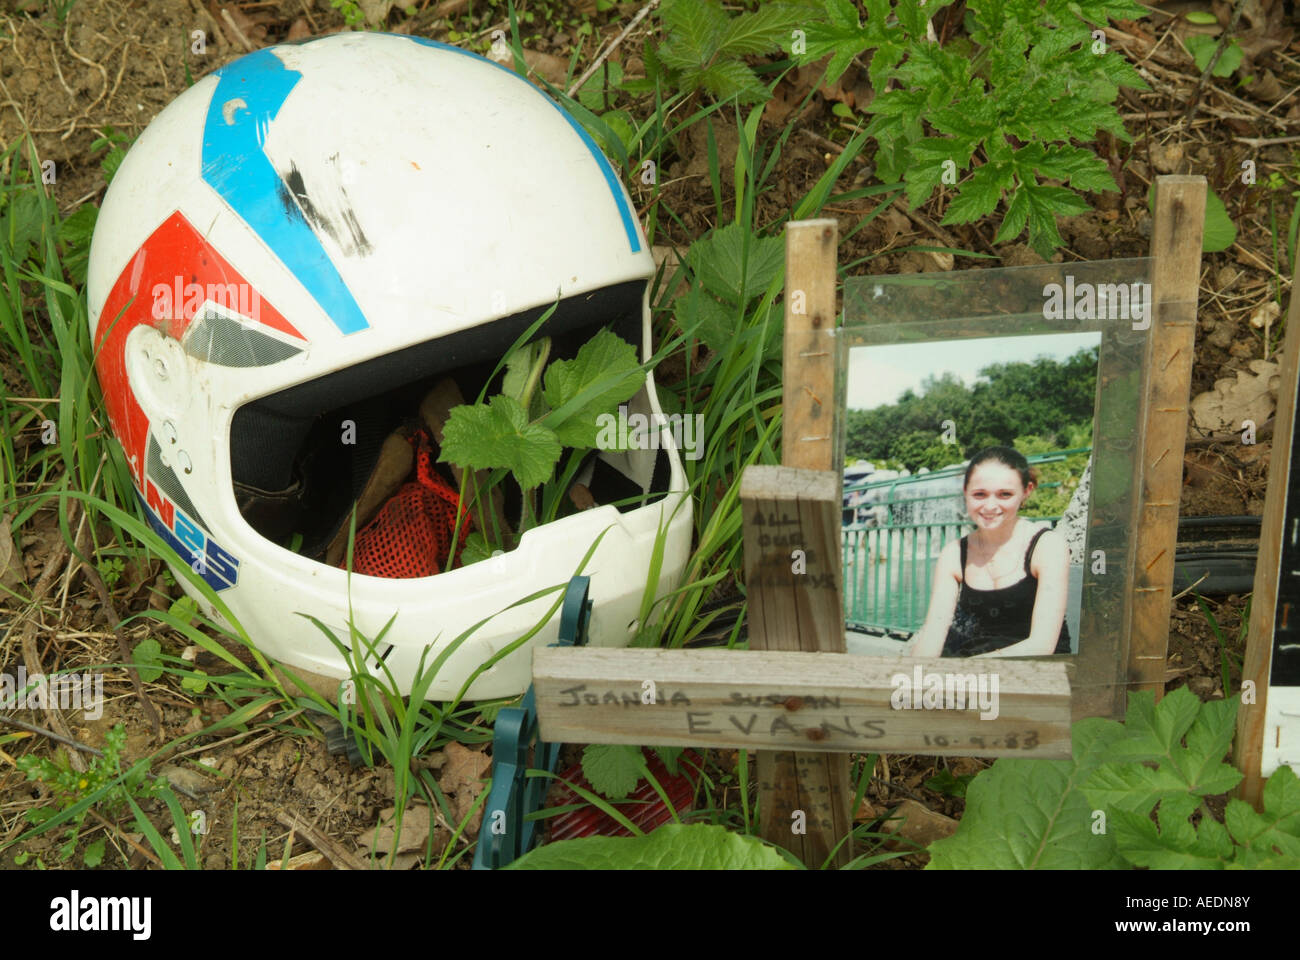 A road-side memorial to a young girl killed in an accident involving a motor bike. - Stock Image